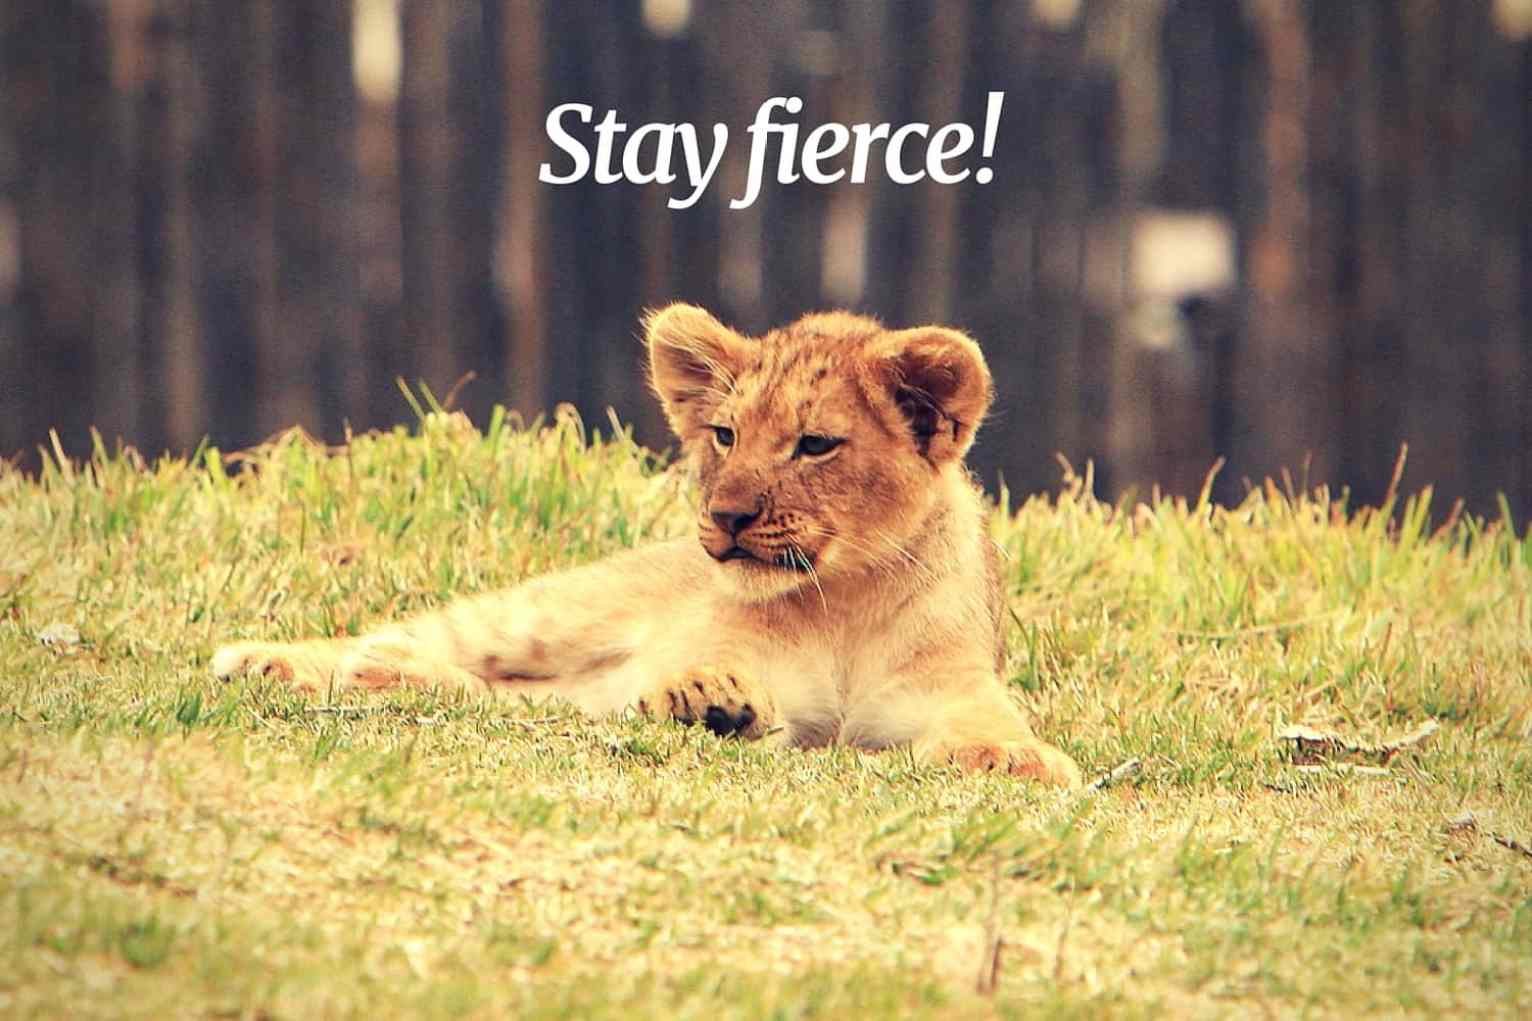 stay fierce, young lion